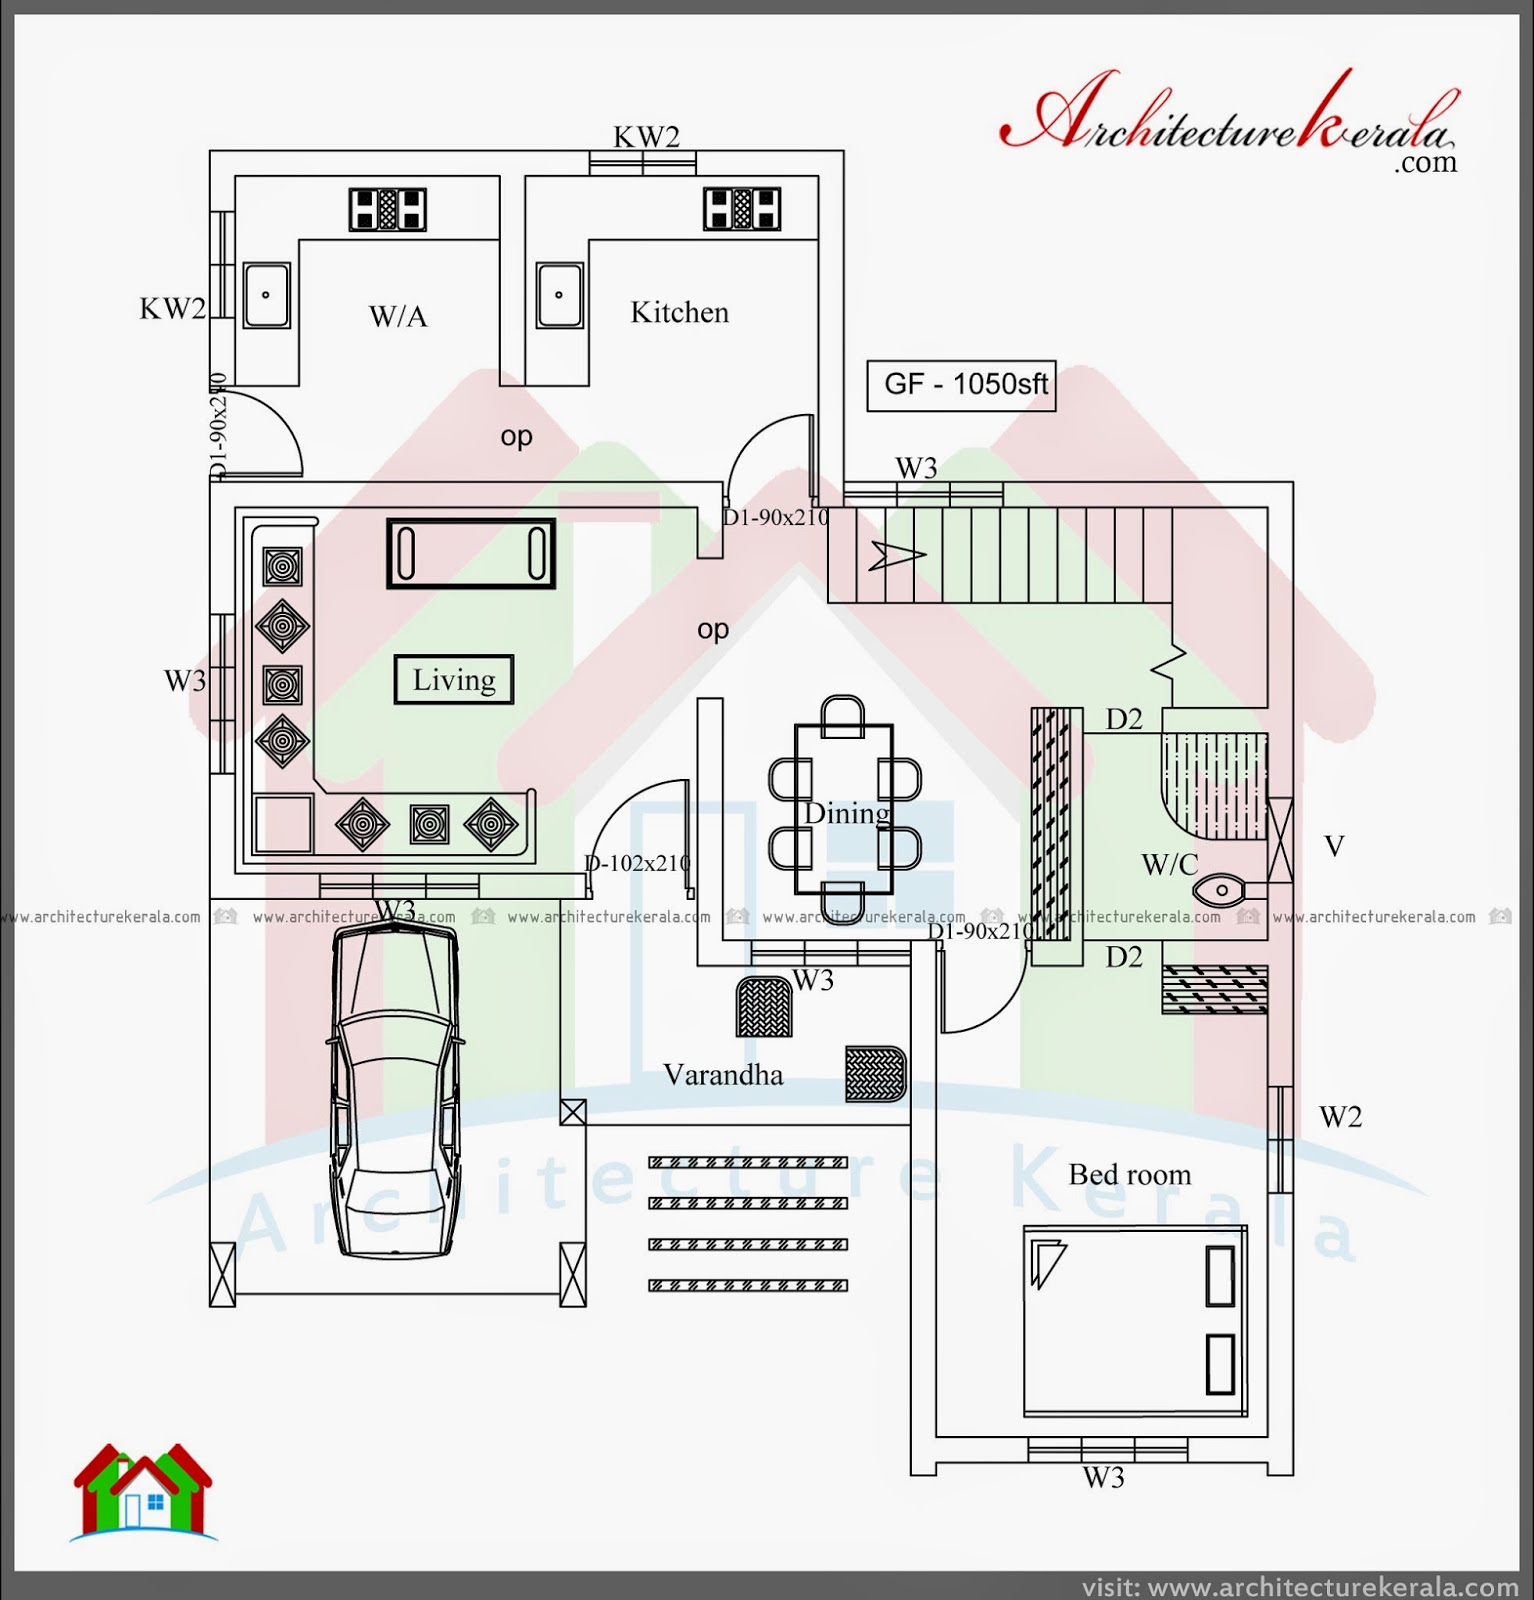 Three bedroom two storey house plan architecture kerala for Kerala style 2 bedroom house plans